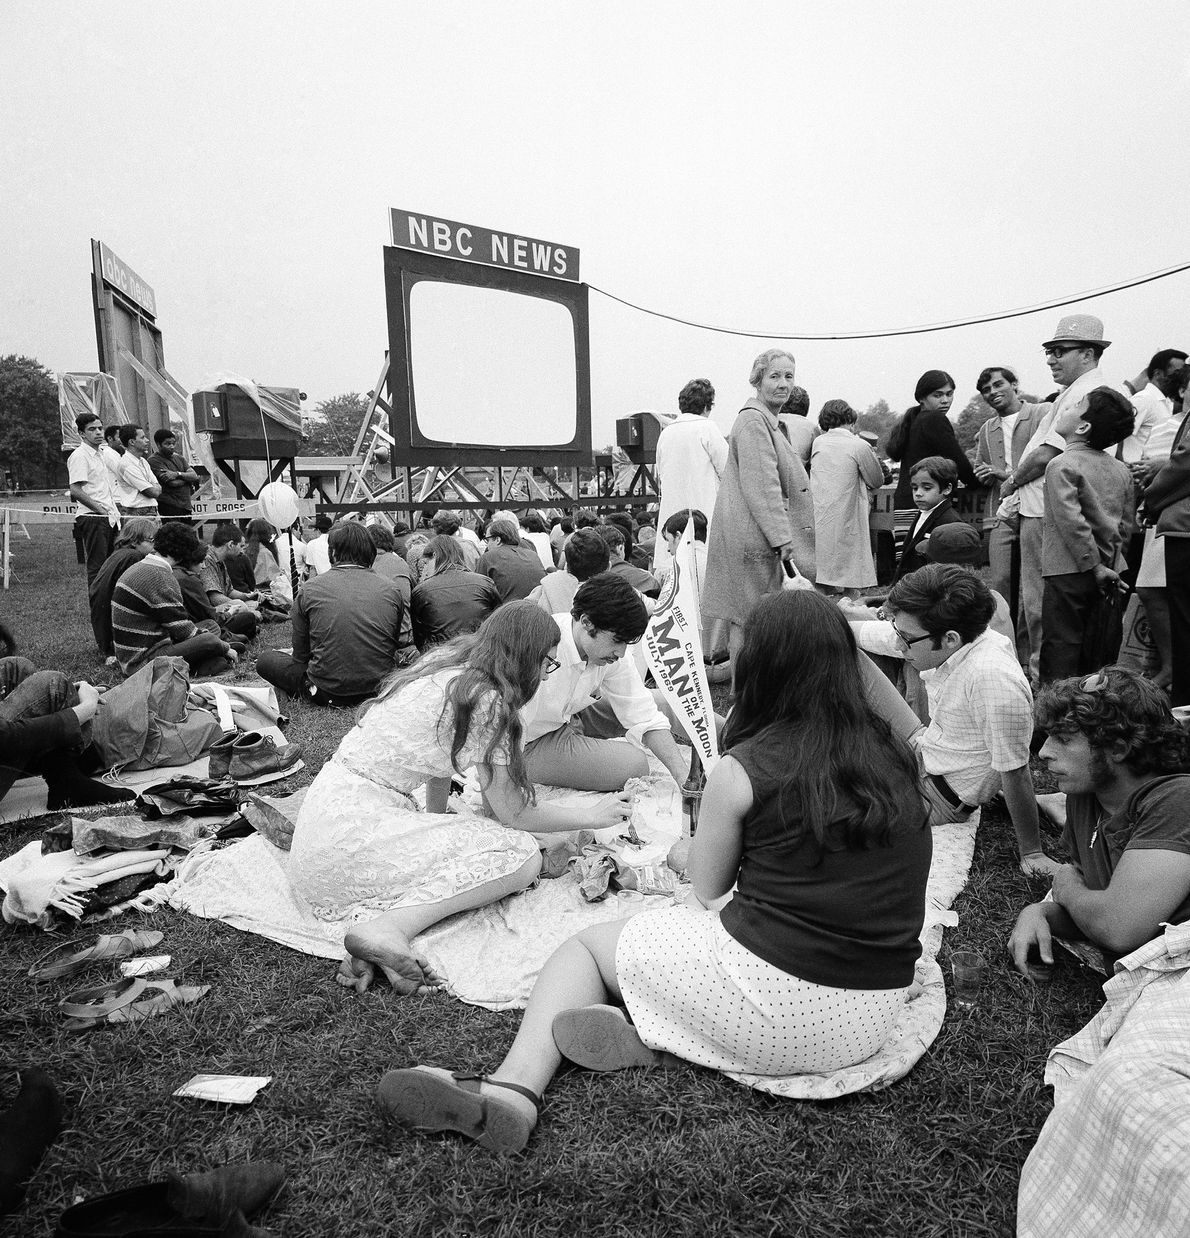 In New York City's Central Park, a crowd watches on an open-air screen as the Apollo ...